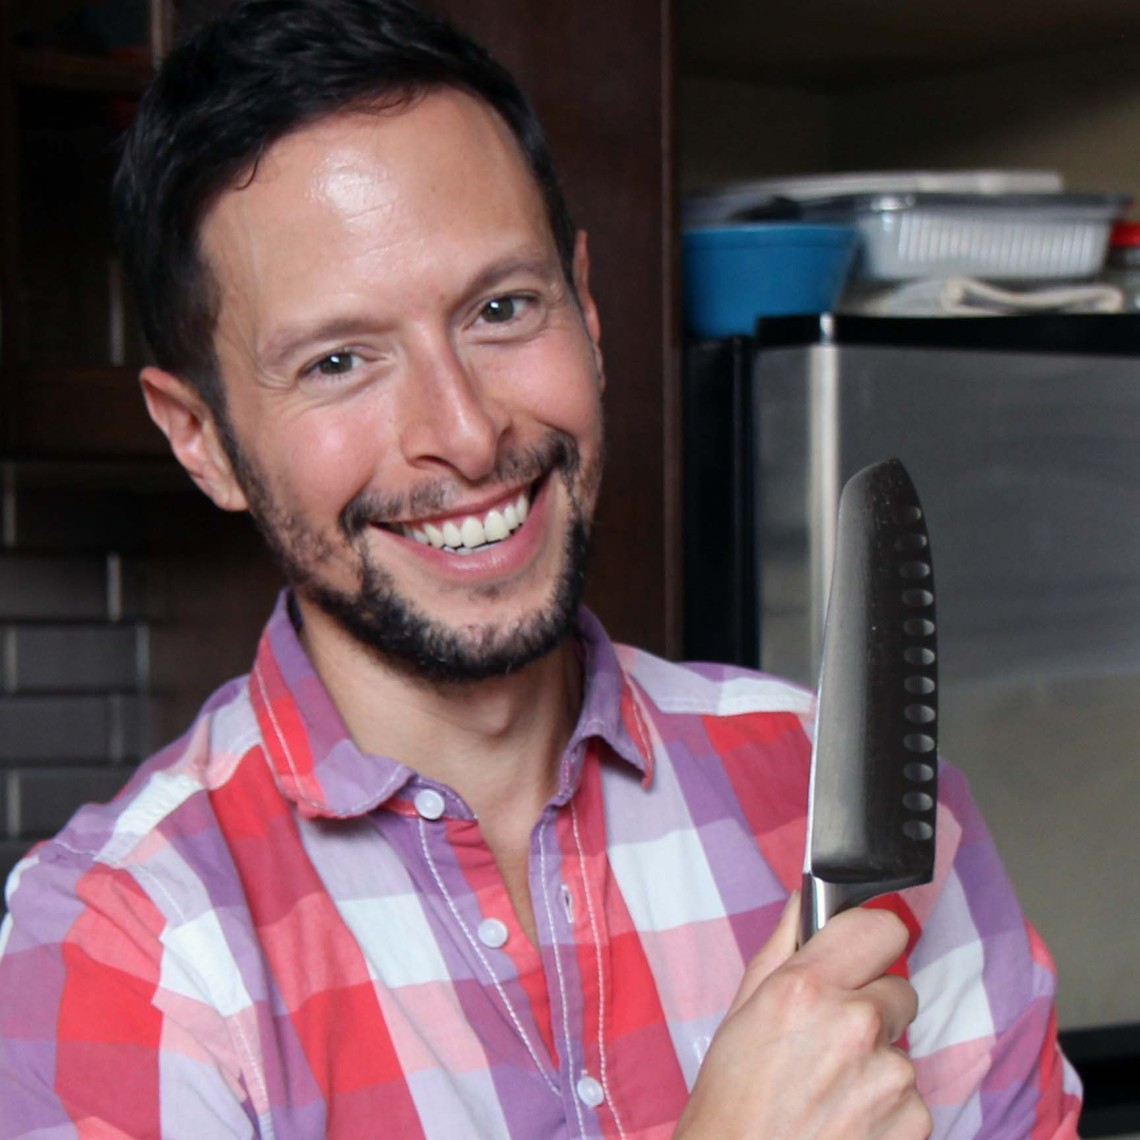 Jason Wrobel is the star of the film food Helas and today he is on episode 7 of the Food Heals Podcast